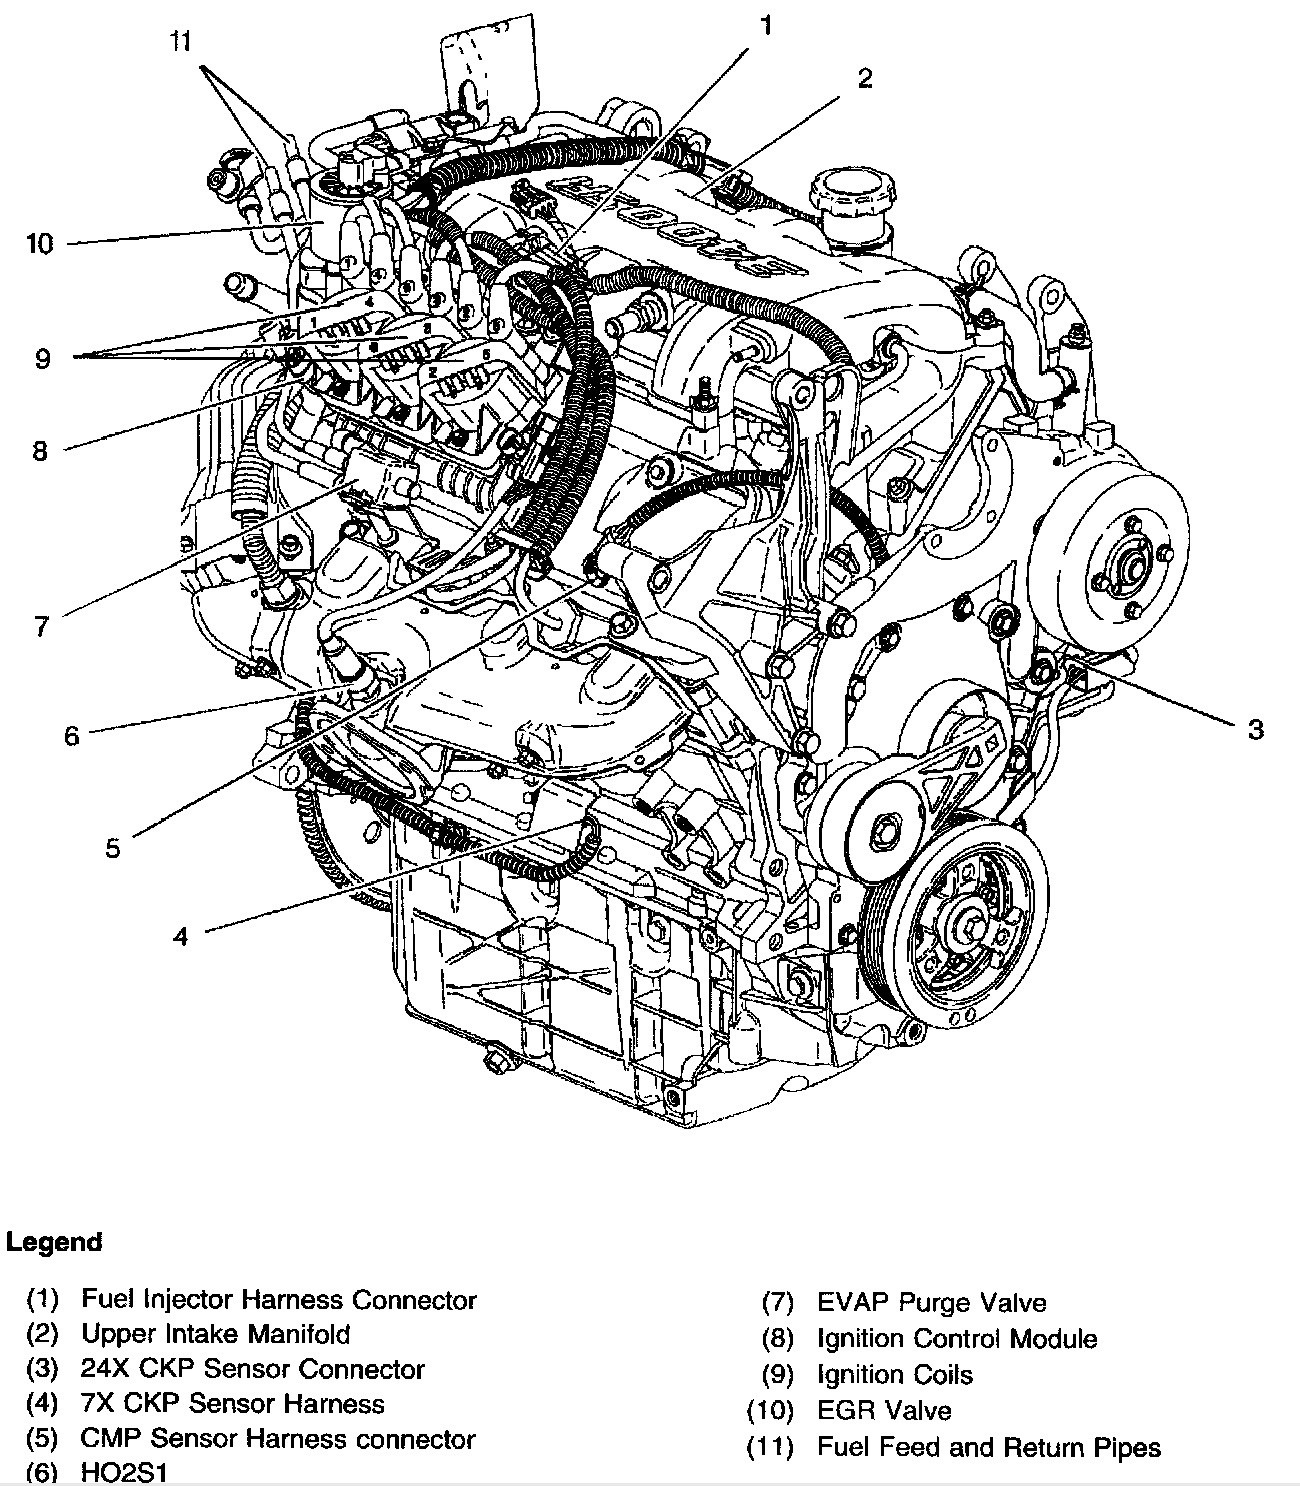 2009 Buick Enclave Engine Diagram - Vw Starter Solenoid Wiring Diagram -  tekonshaii.yenpancane.jeanjaures37.frWiring Diagram Resource